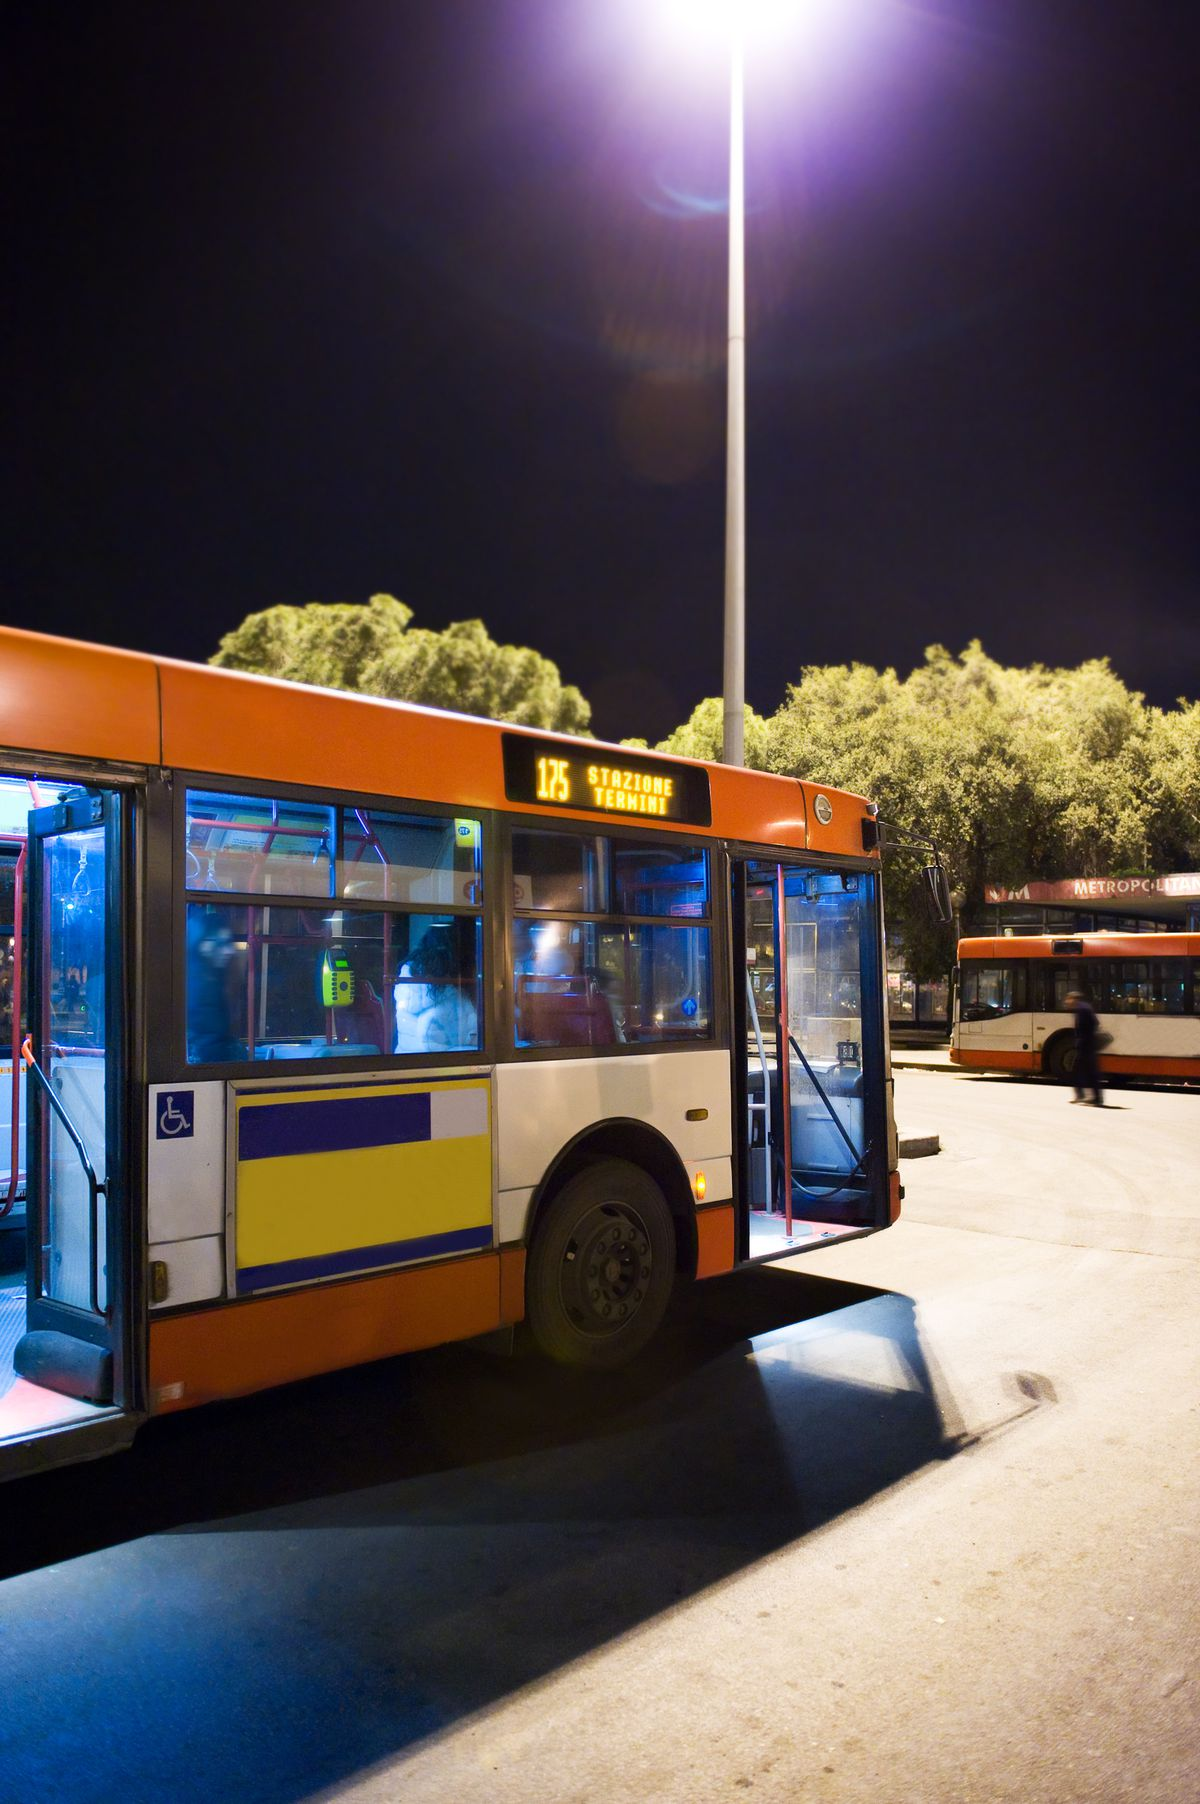 A orange bus pulls up to a station late at night.